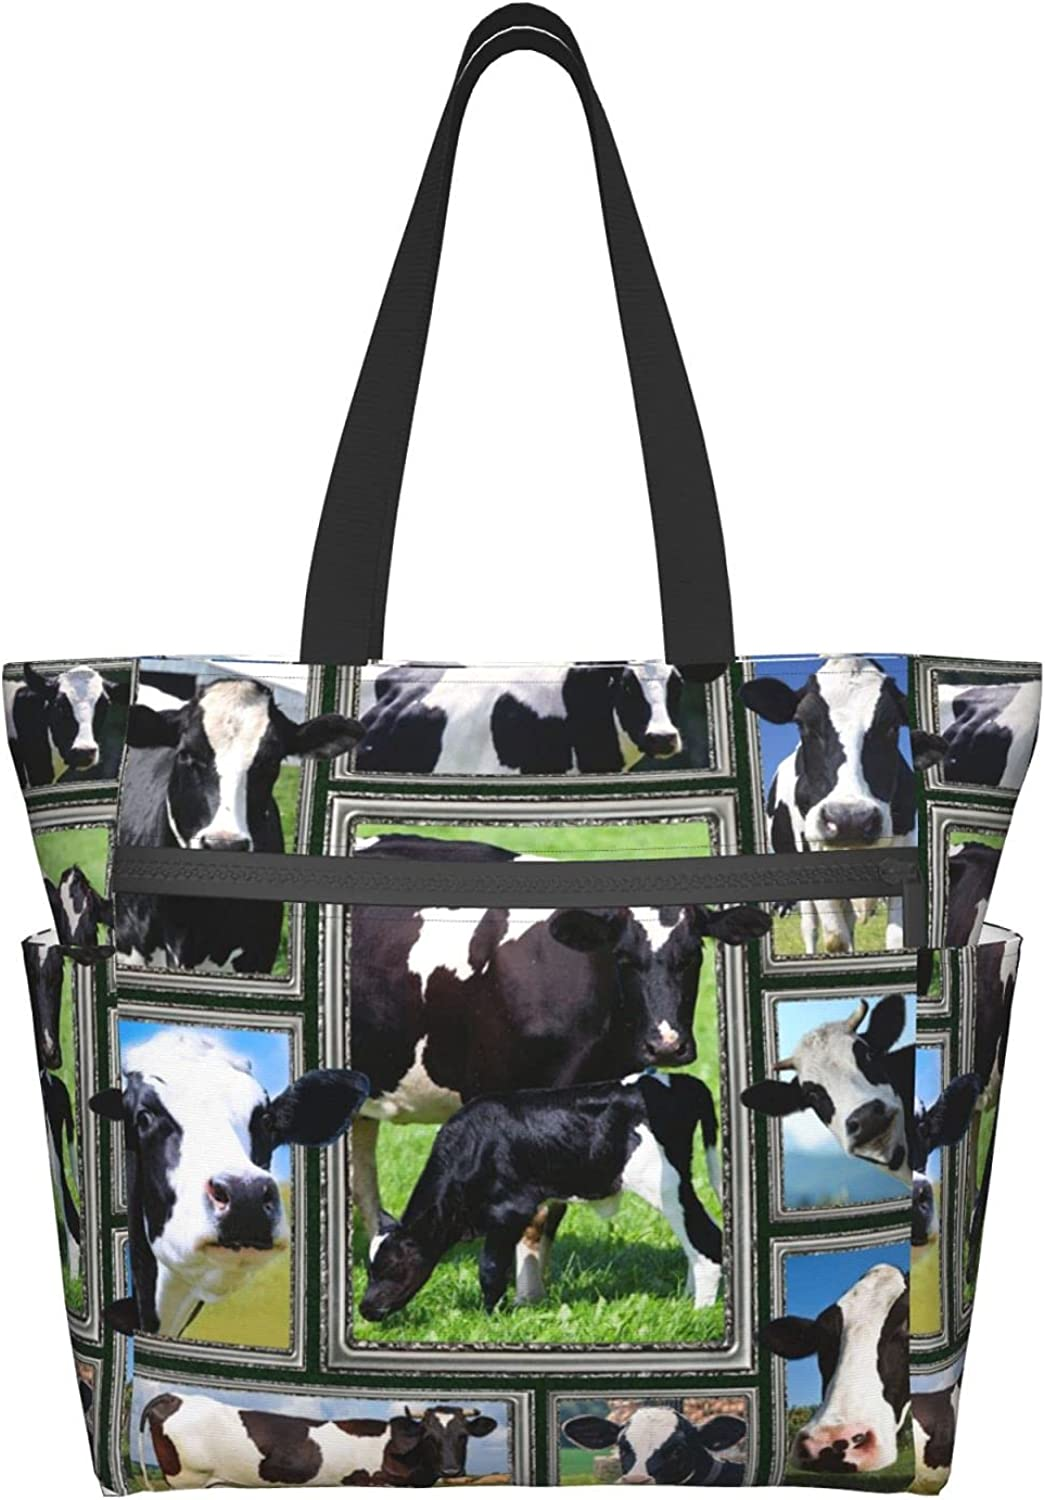 Tote Bag with Large-scale sale Zipper for Women Max 70% OFF Bags Handbag Cattle Daily f Purse